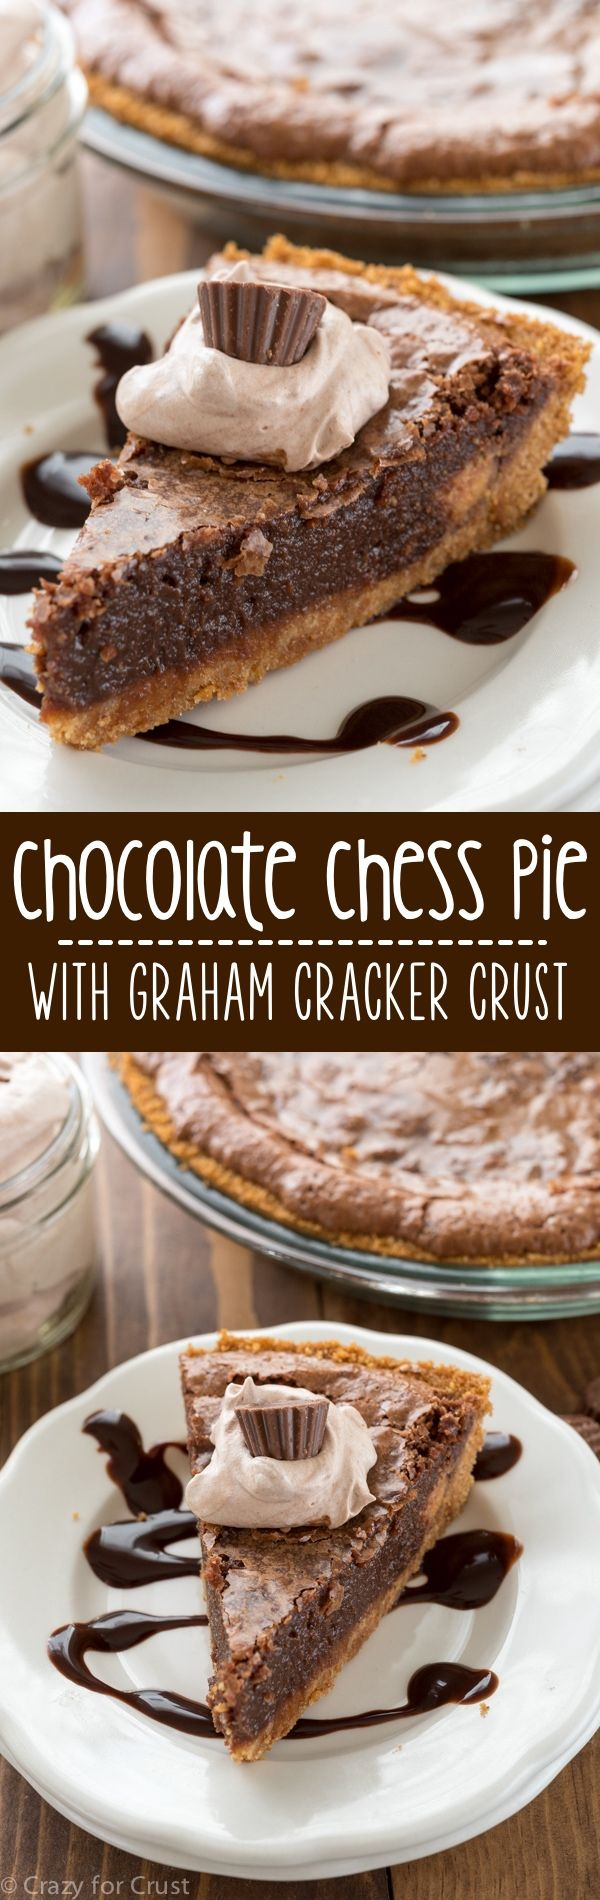 This EASY Chocolate Chess Pie Recipe has a crunchy graham cracker crust that is so good with the gooey chocolate filling! This is the BEST pie recipe!